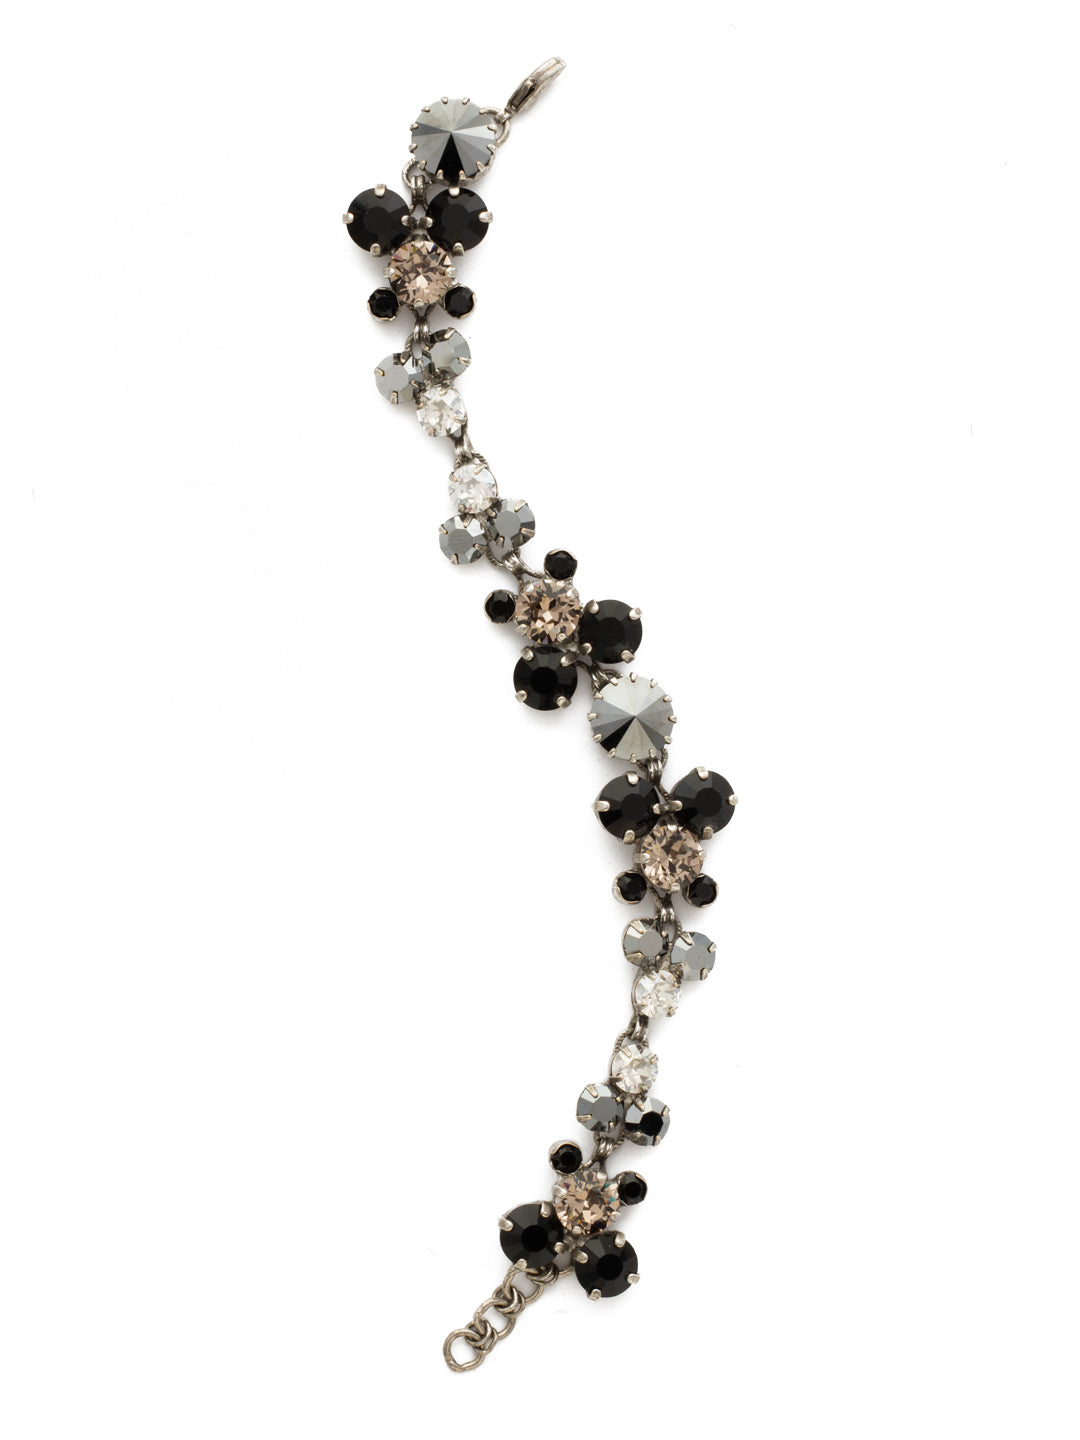 Well-Rounded Tennis Bracelet - BDH24ASBON